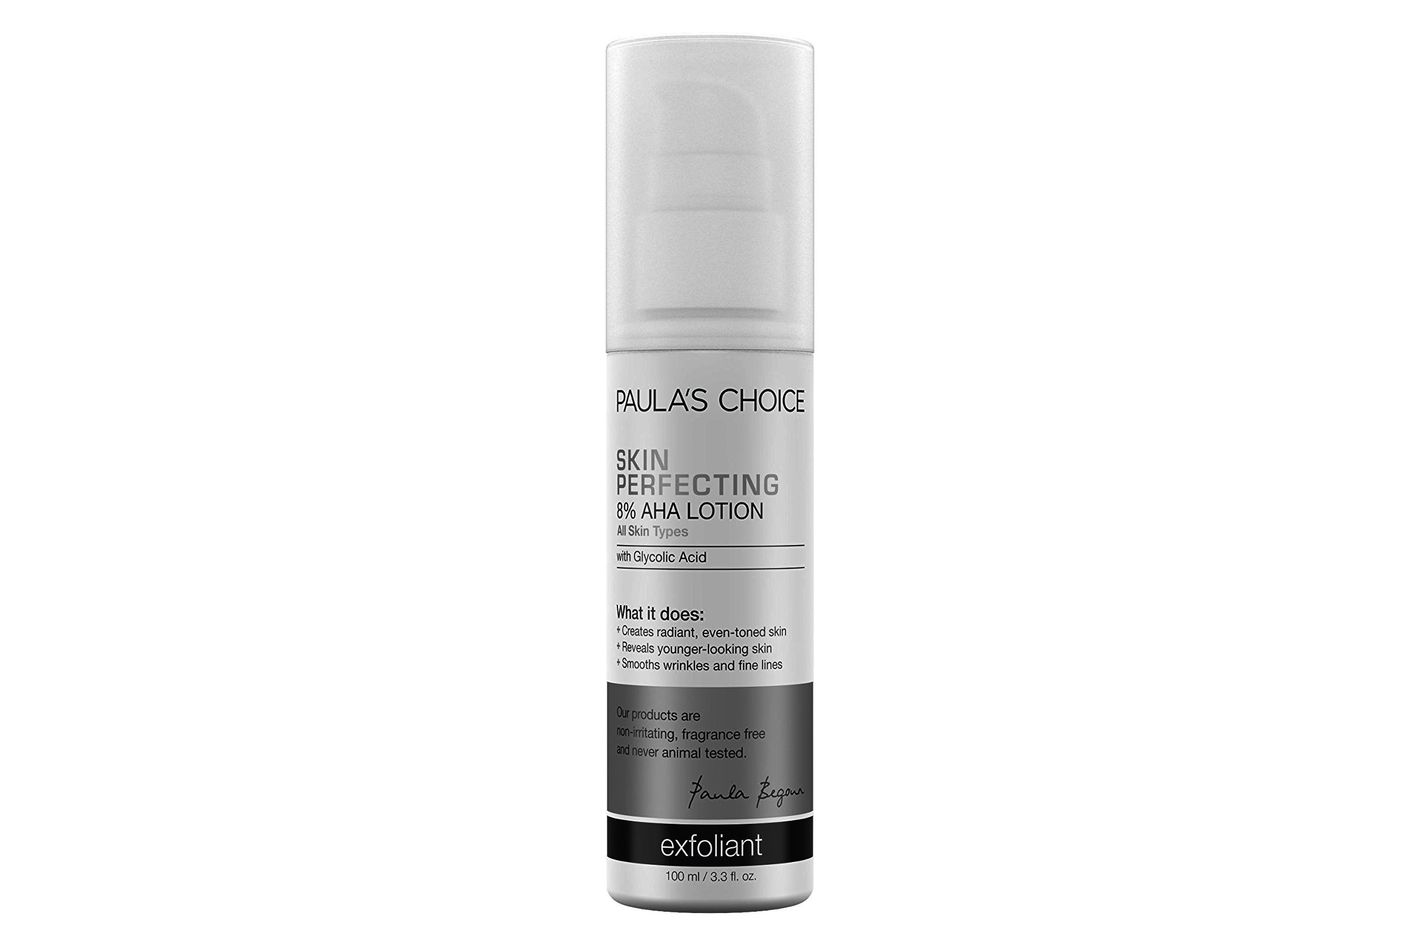 Paula's Choice 8% AHA Skin Perfecting Exfoliant